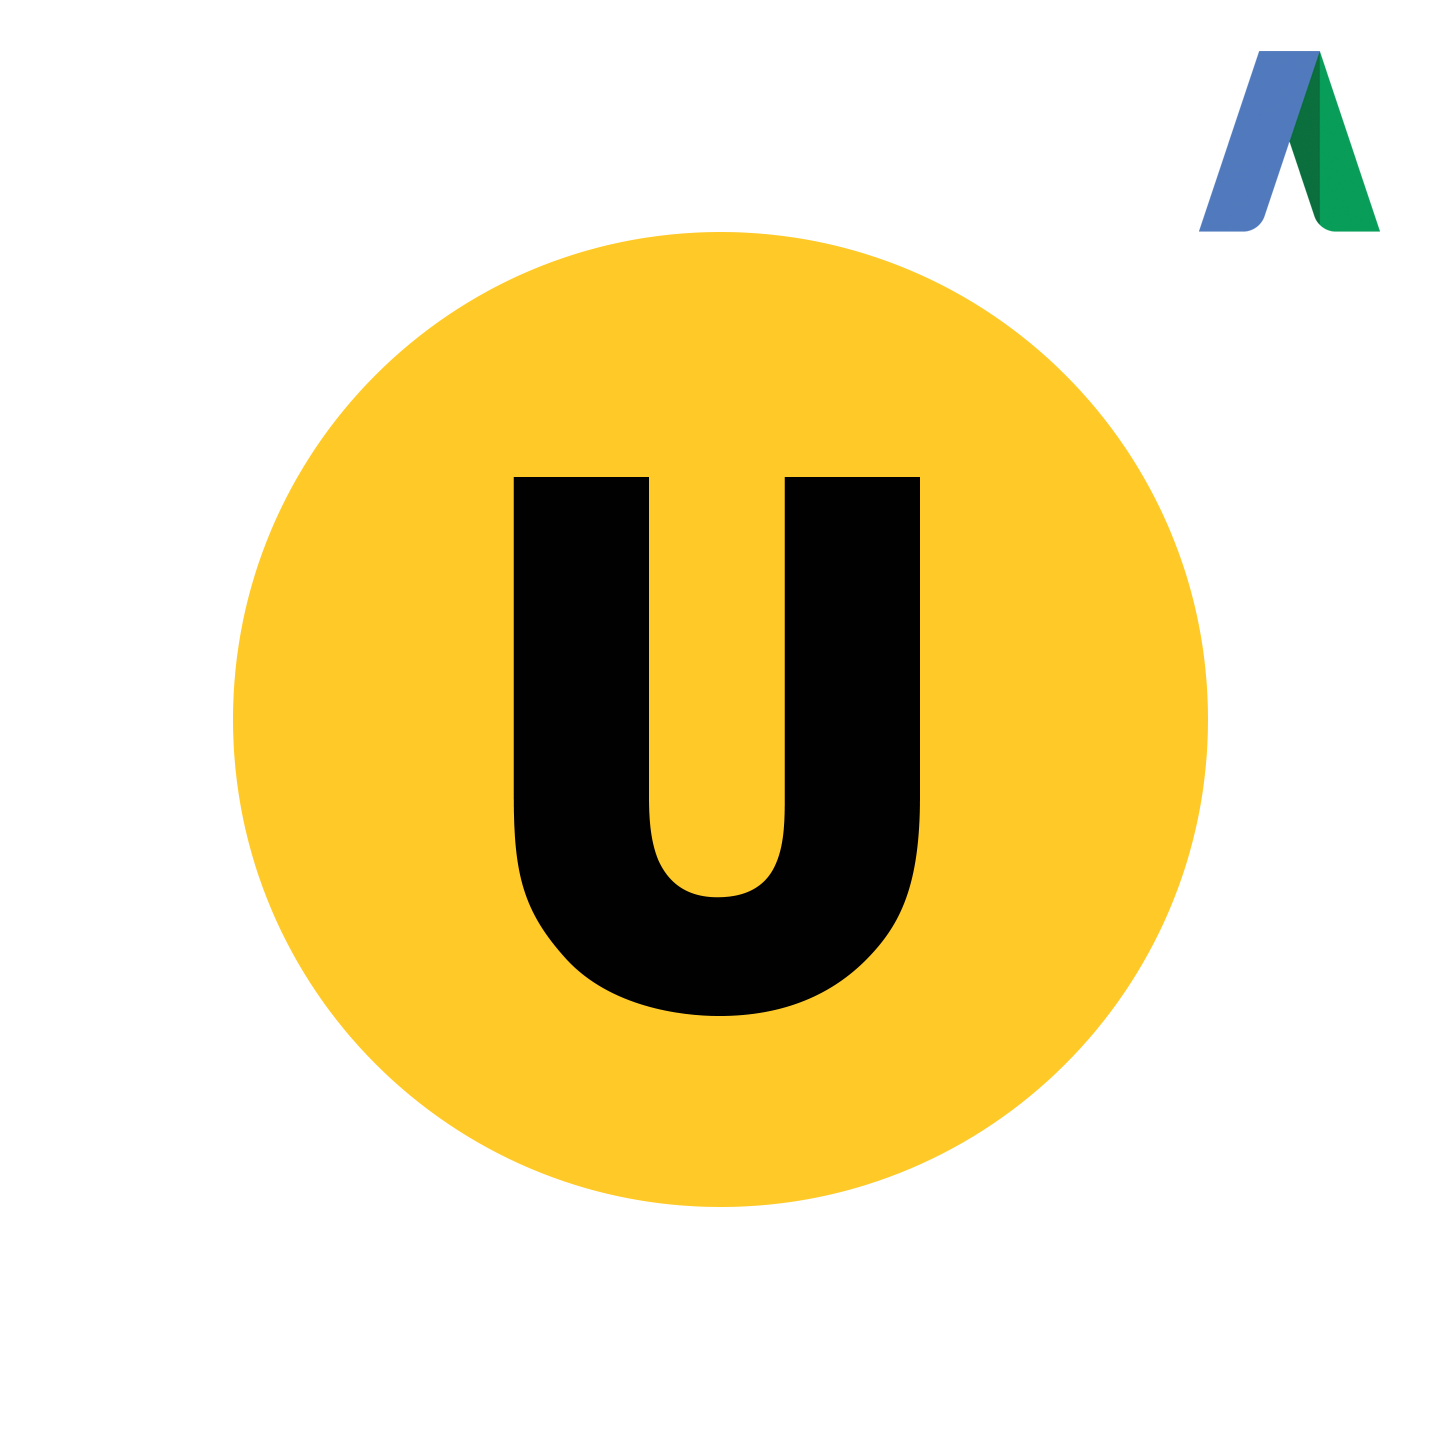 Kurs i Google Adwords | Utdannet.no